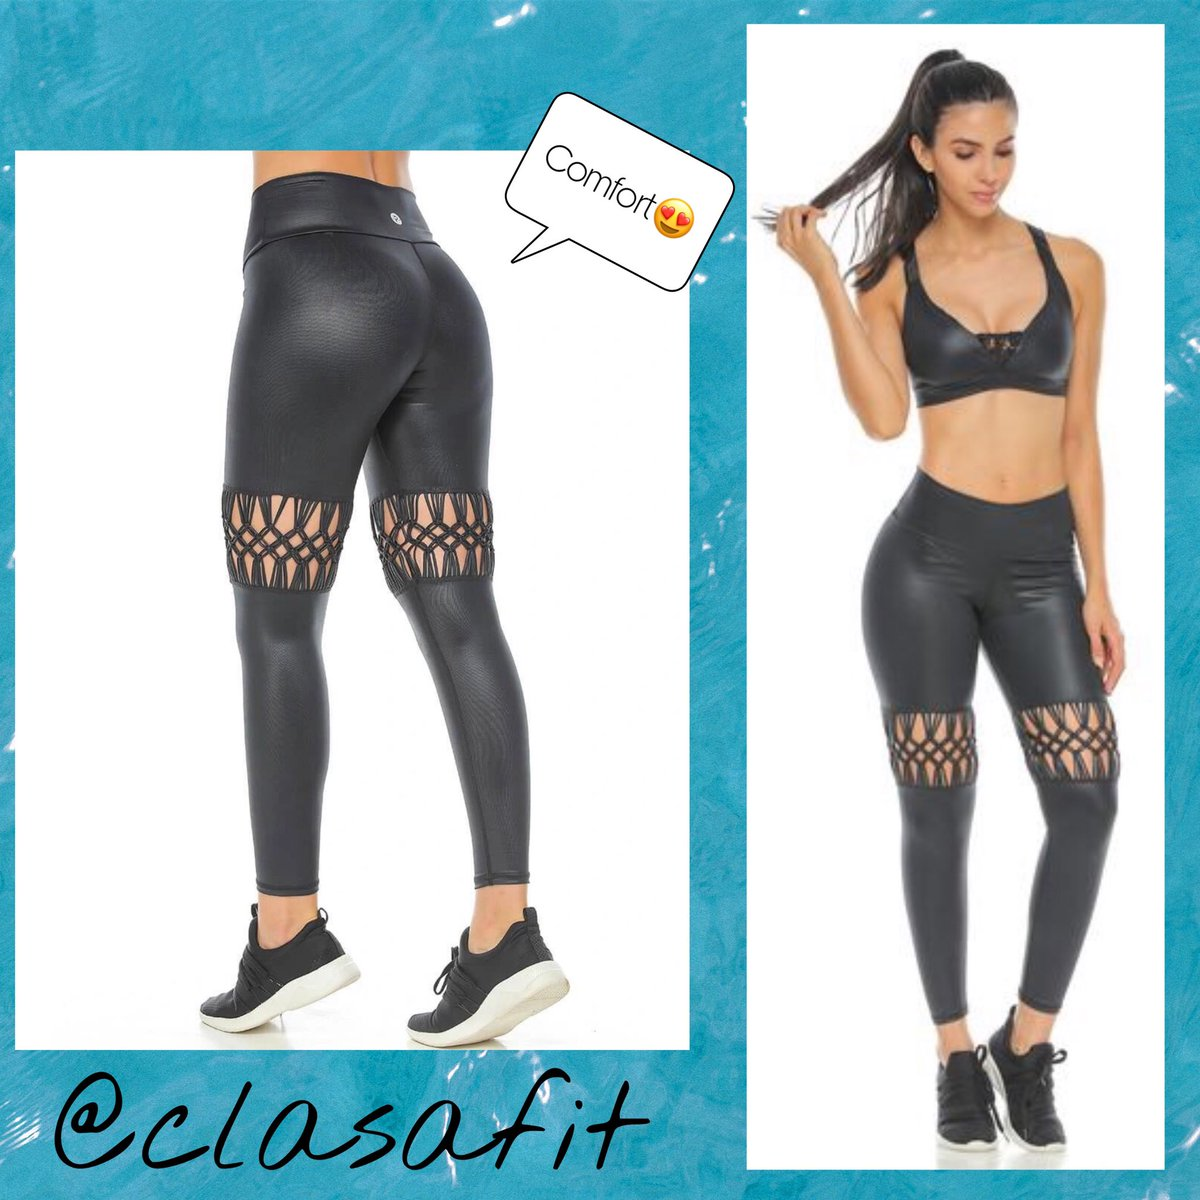 Spectacular sports leggings for women in a deep black shade that shines as much as you do. Slim your body without losing comfort.      By  @saavedraclaudia #fitmom #fitnessmodel #fitnessaddict #fitnesslifestyle #girlswholift #bodybuilding #shredded #flex  #instafit #trainpic.twitter.com/b9NnZgO2YD